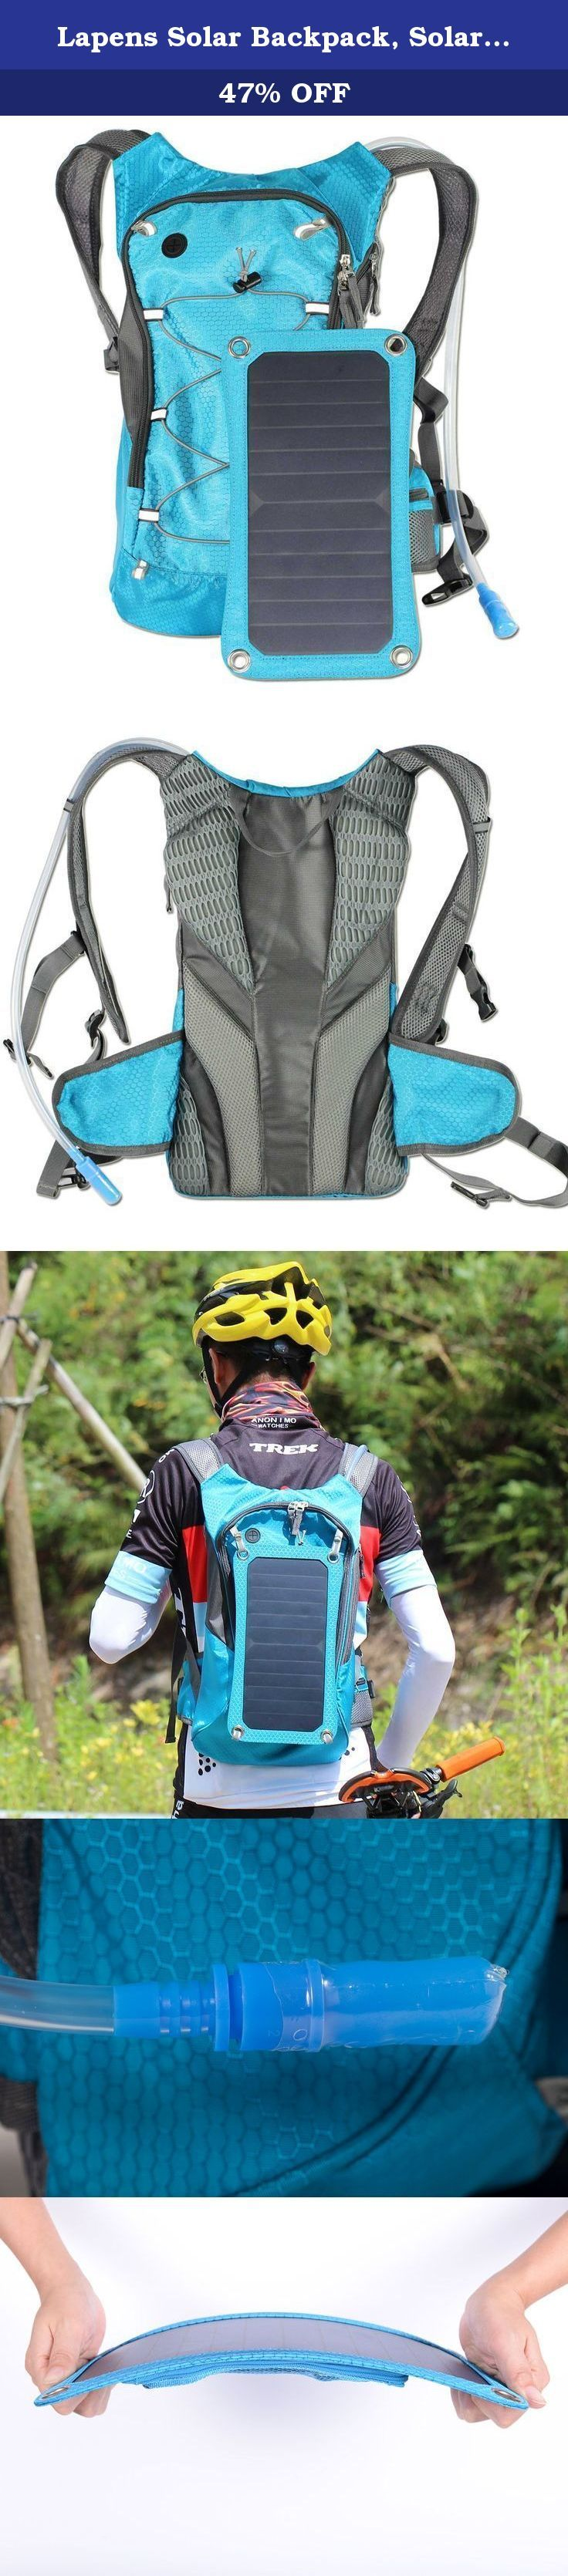 Lapens Solar Backpack, Solar Panel Bag,Outdoor Backpack Nylon Materials,Charge for Smart Cell Phones, eReaders, Speakers, Gopro Cameras and More LPSBP01-Be01. Lapens do everything you want ! Provide the best shopping online We have ten years of experience, to provide the most comfortable shoes and backbacks for you! Features a classic shape with several pockets for storage and organization. This backpack has a roomy main compartment, with enough space to store other accessories like...